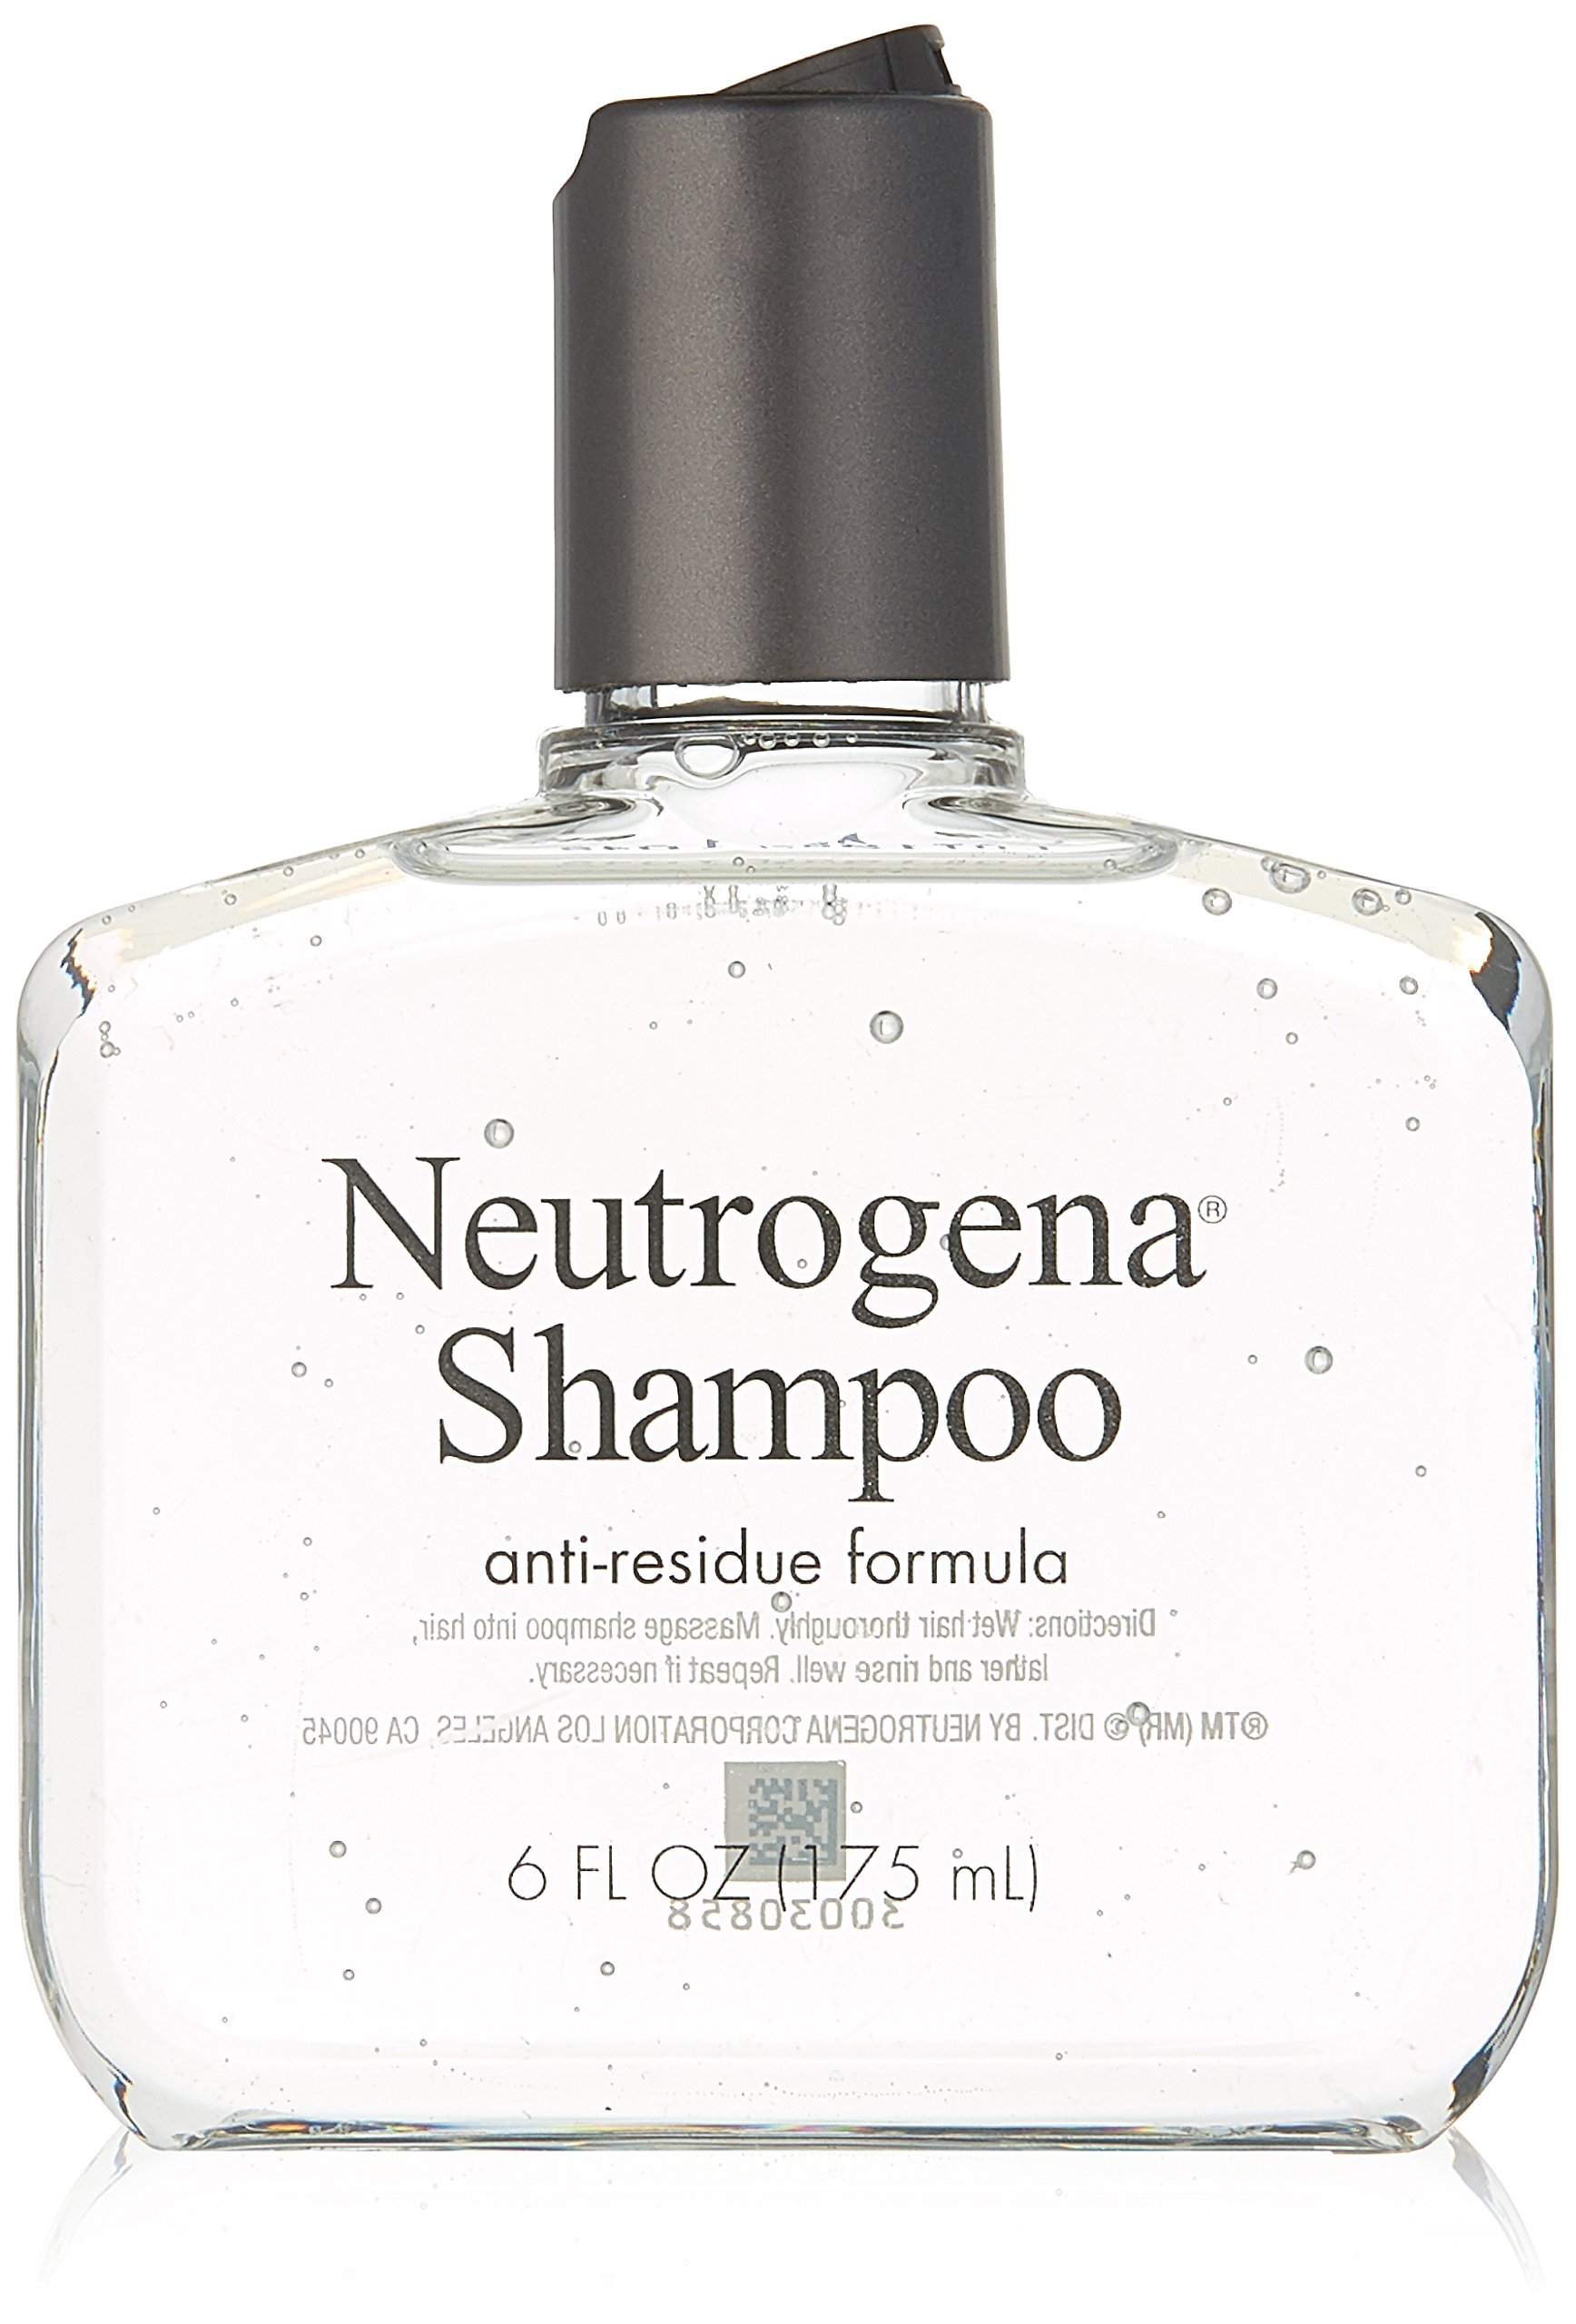 Neutrogena Anti-Residue Shampoo, Gentle Non-Irritating Clarifying Shampoo to Remove Hair Build-Up & Residue, 6 fl. oz (Pack of 2) by Neutrogena